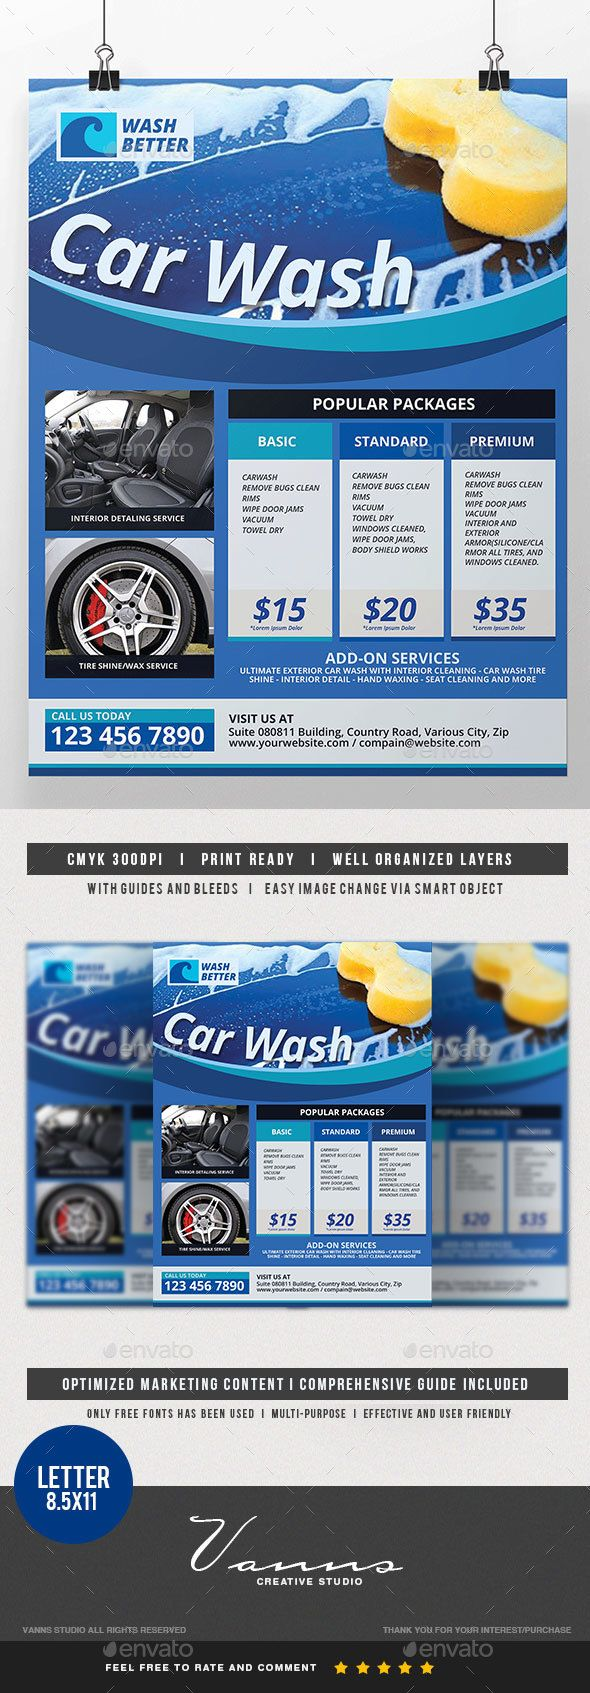 Car Wash Services #Flyer - Commerce Flyers Download here: https://graphicriver.net/item/car-wash-services-flyer/19722516?ref=alena994